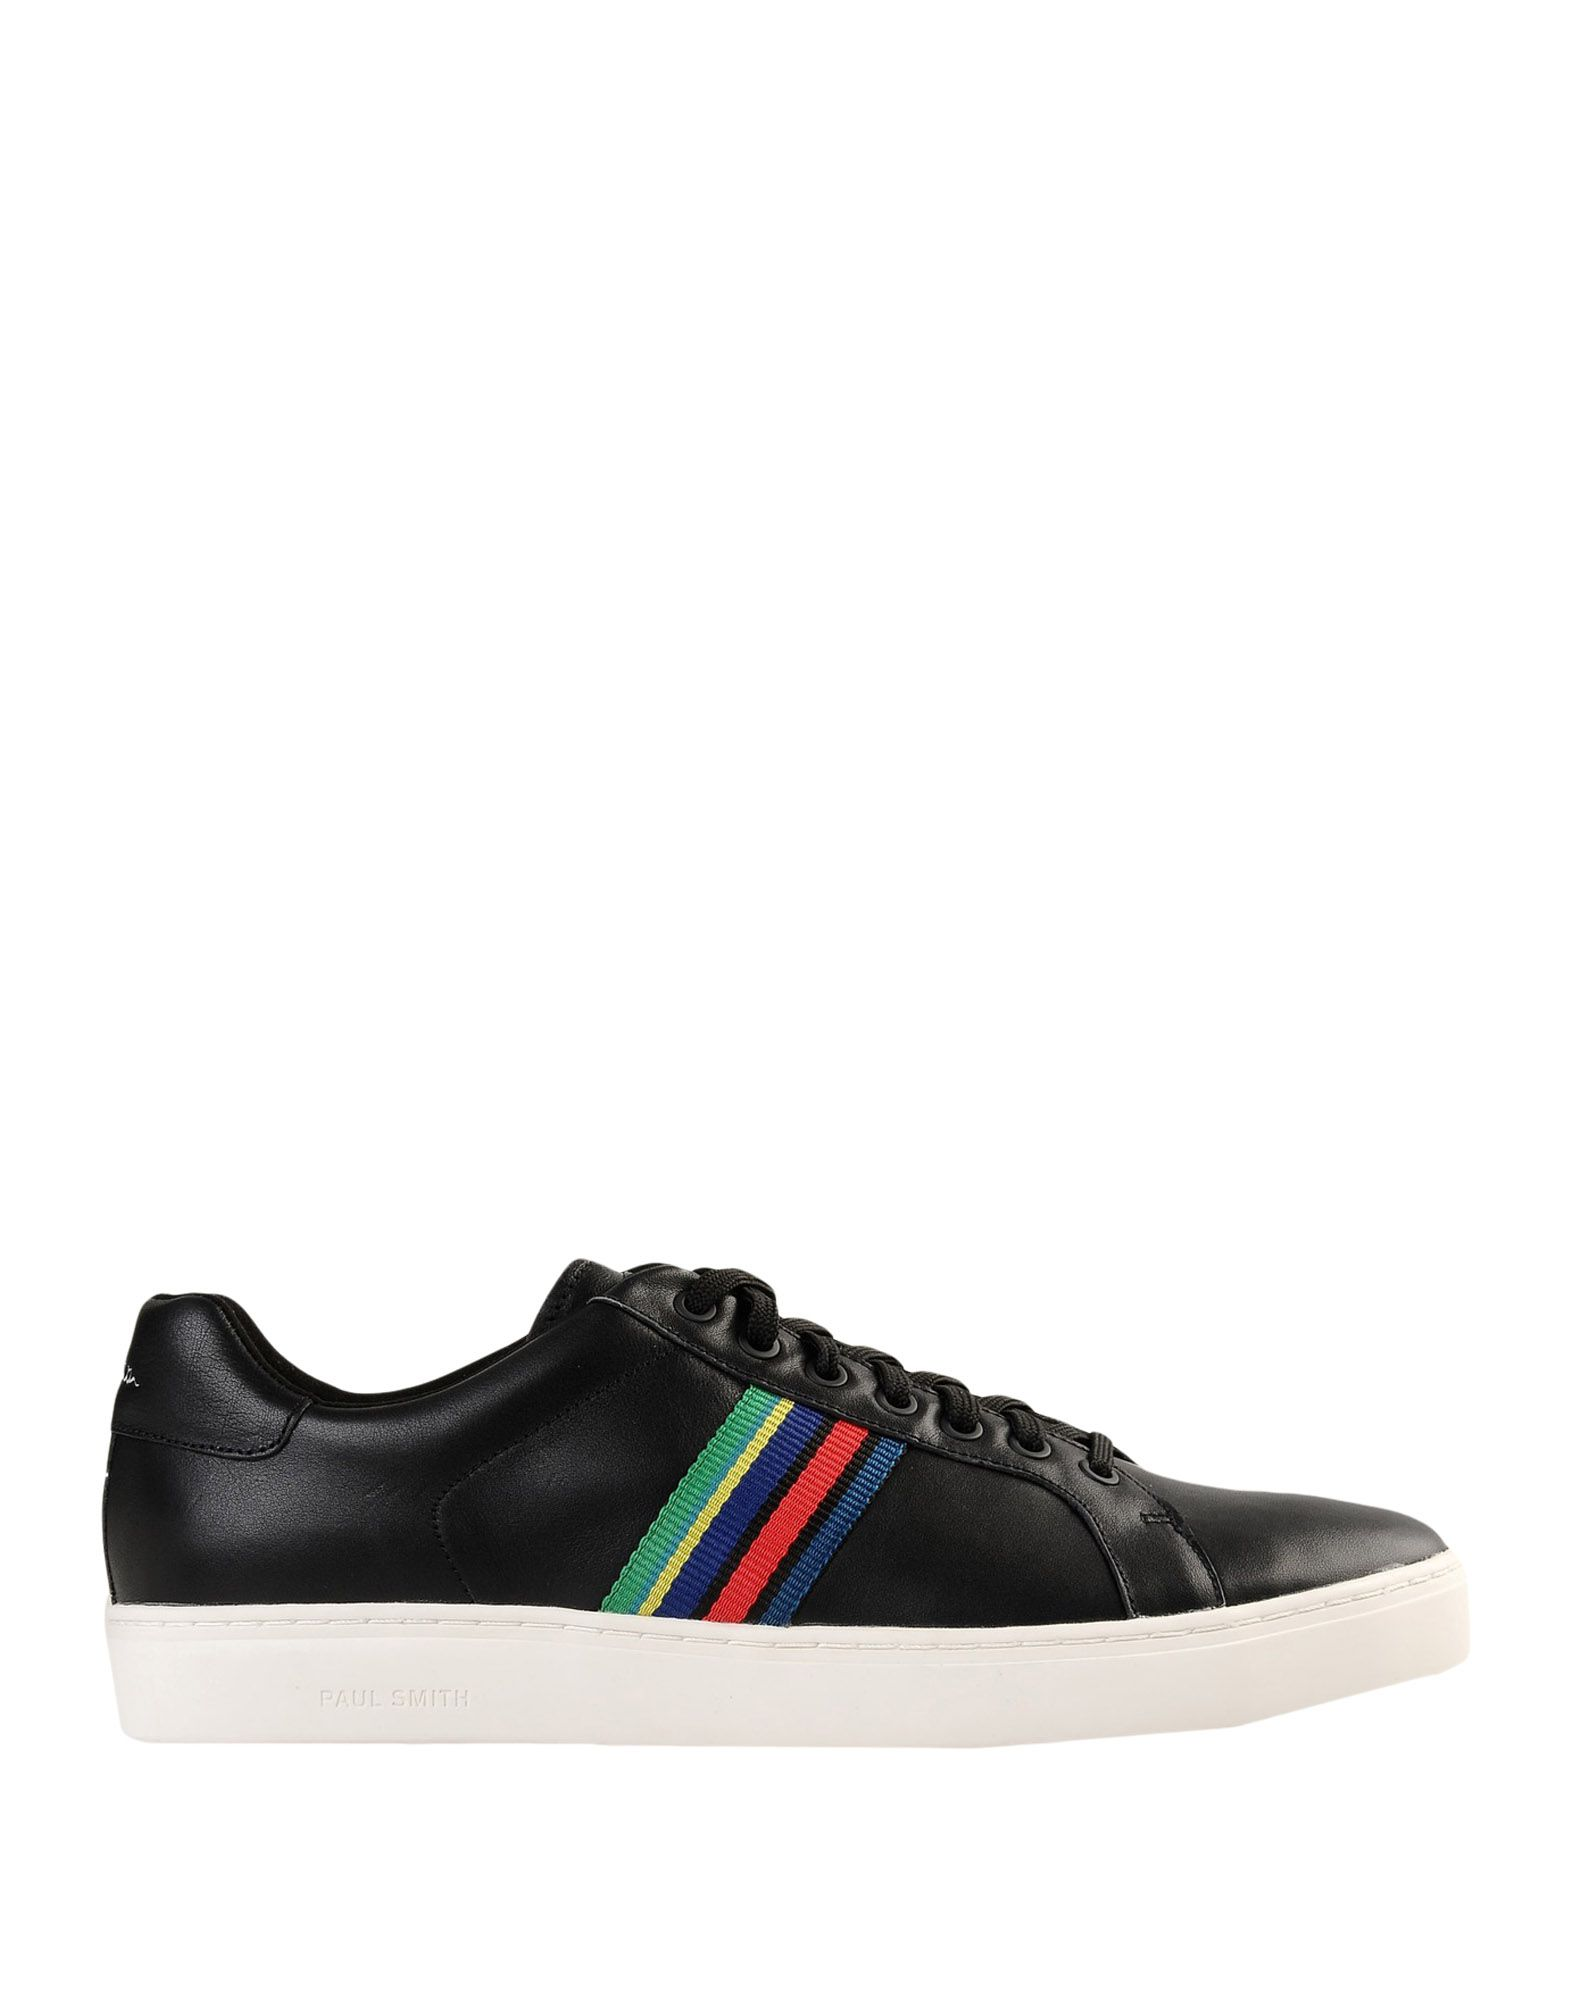 Ps By Men Paul Smith Sneakers - Men By Ps By Paul Smith Sneakers online on  Australia - 11538546IN 588cfb